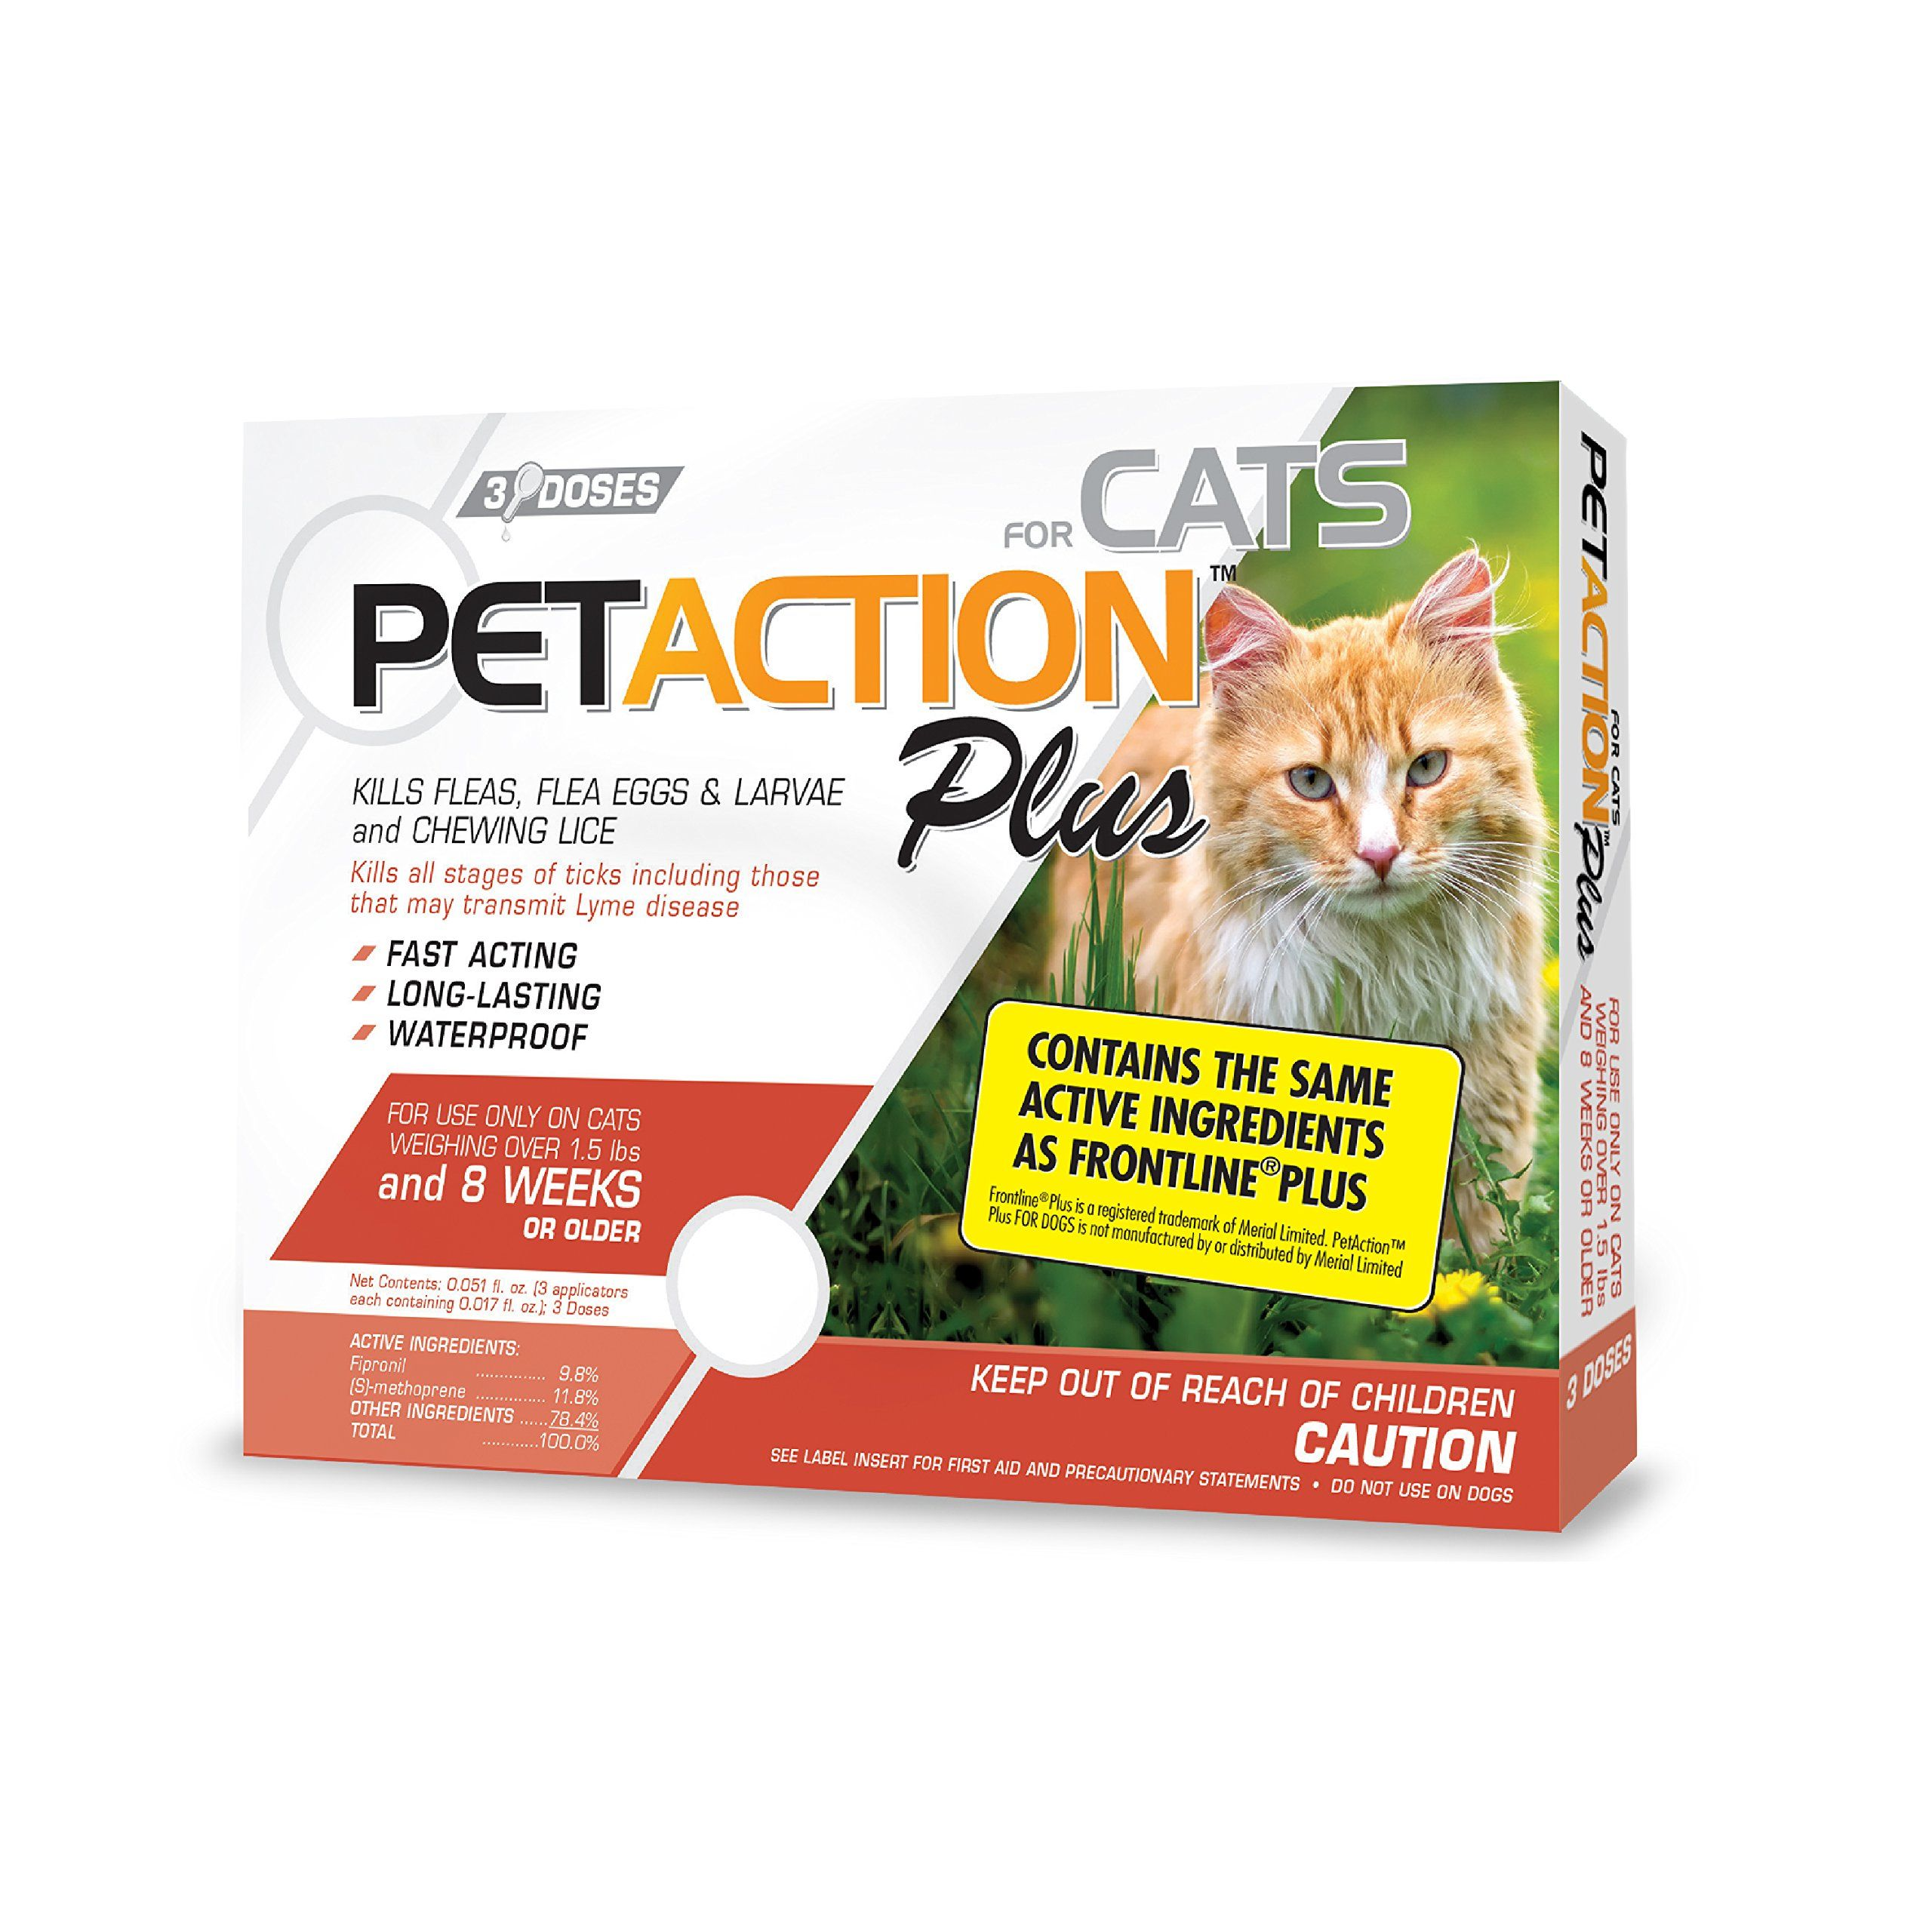 Petaction Plus Flea Catsideas Tick Treatment For Cats Tick Treatment Flea And Tick